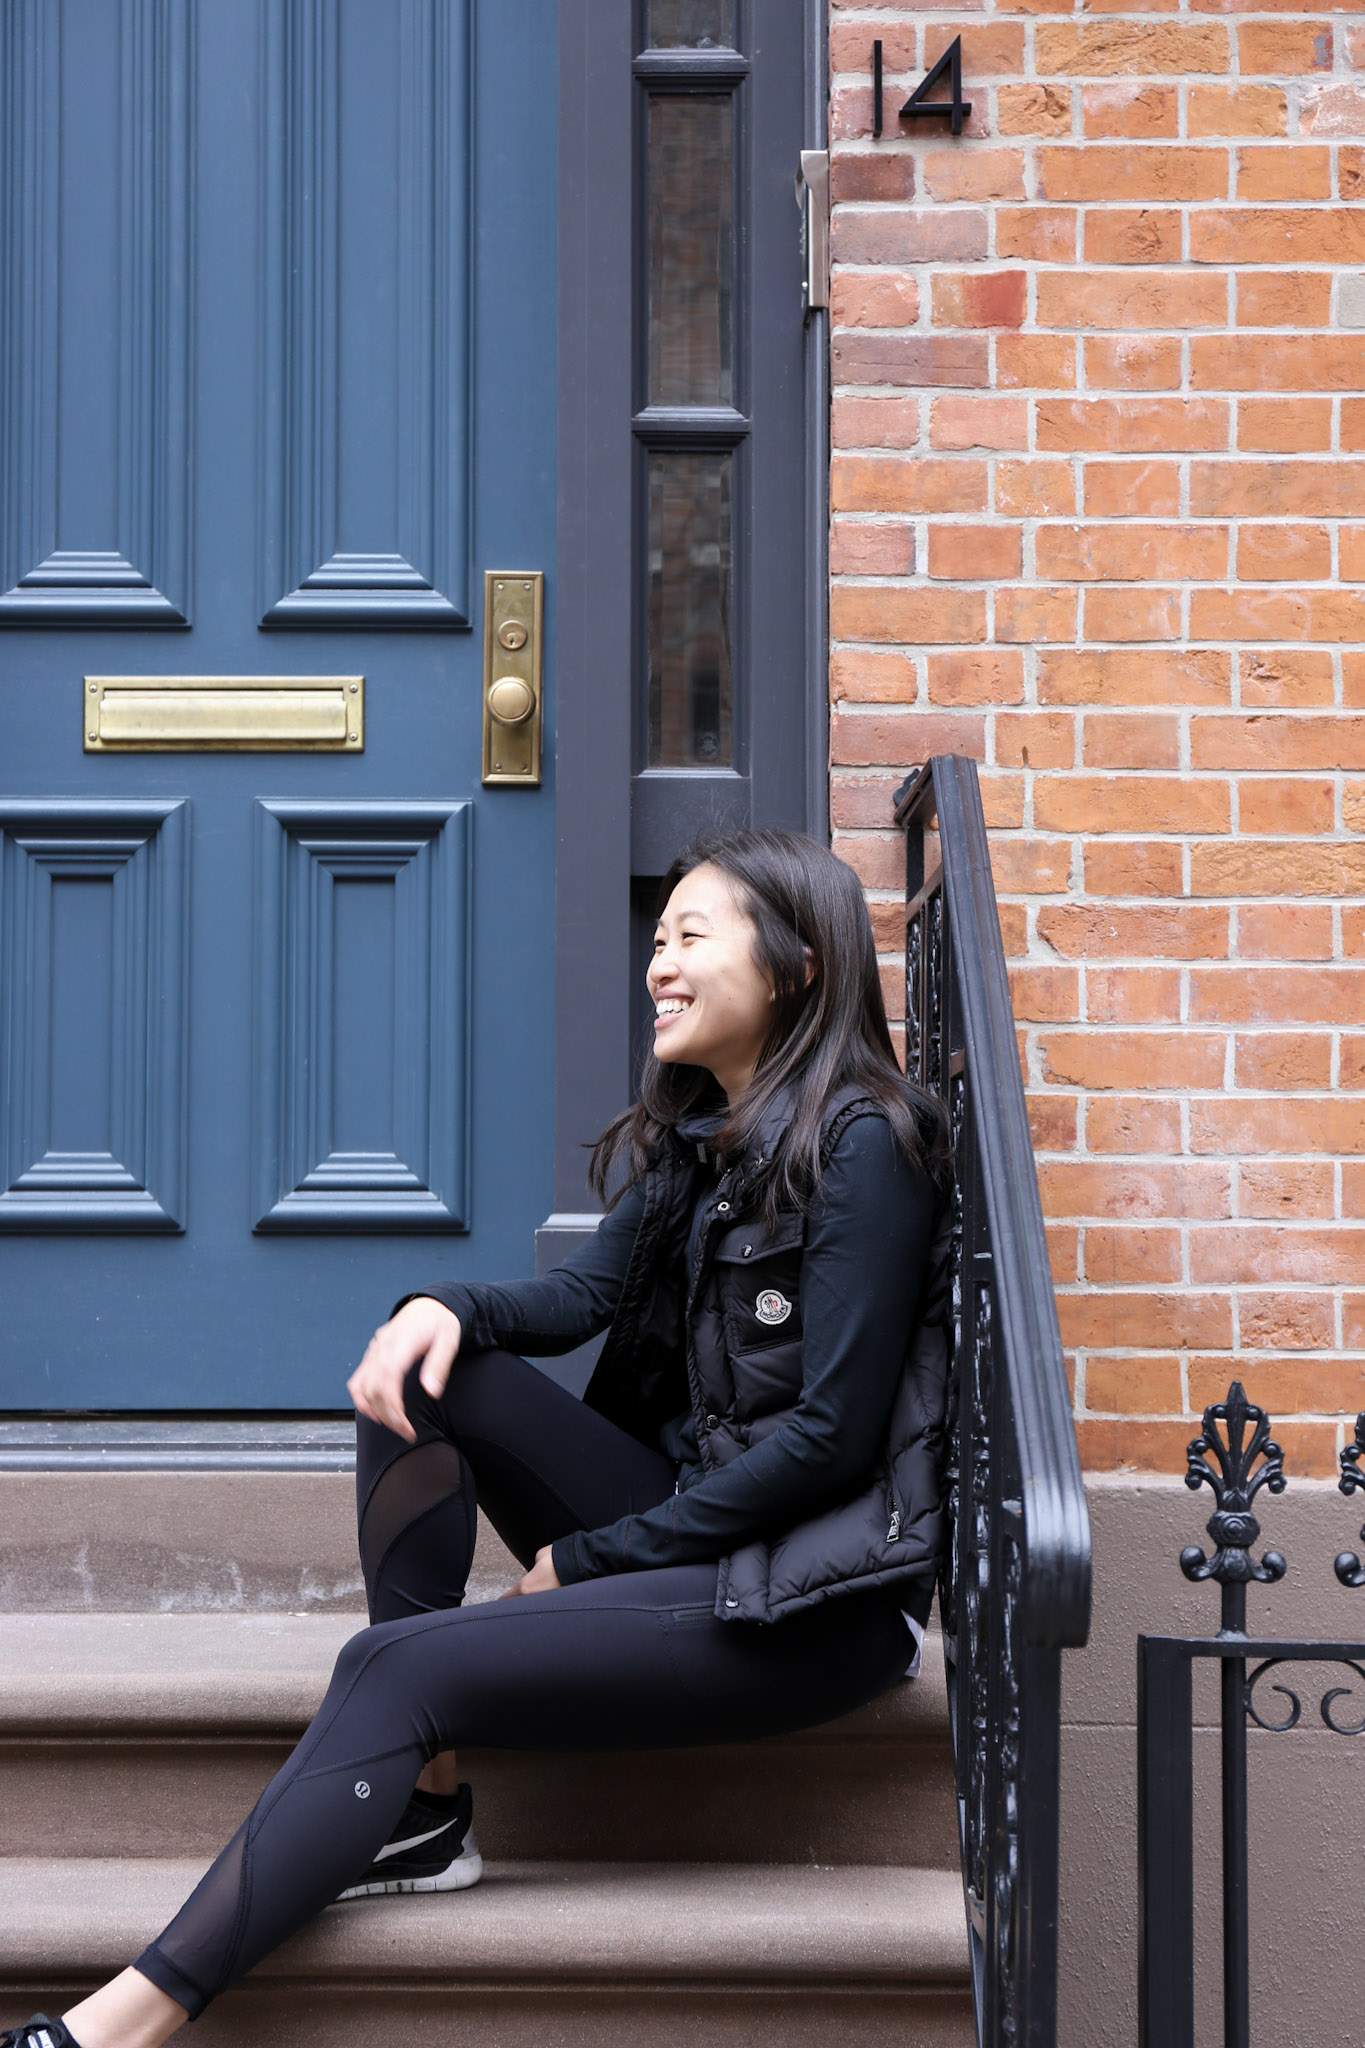 Hi beauties 👋 - My name is Ling. I'm a New York-based Health Coach passionate about helping women discover healthy lifestyles that are realistic, balanced and sustainable. For some of us,eating is way more complicated than calories in, calories out. It's a touchy subject that can stir up a lot of frustrating emotions. I think many of us can recall the exact moment family, friends, boyfriends, teachers, acquaintances and/or strangers made us feel awful or ashamed about how we looked. Some of those memories can still bring tears to my eyes.My own journey has been a long, complicated one.I struggled with disordered eating and body dysmorphia for more than a decade:I went through bouts of intense caloric restriction, developed abnormal eating habits, obsessively weighed and body checked myself.It wasn't until I lost my younger sister to leukemia that I realized I was foolishly taking advantage of the one thing she did not have: good health.This epiphany led me to completely change my lifestyle. I began exercising regularly, started eating proper meals, discovered my love for cooking, saw a psychiatrist and nutritionist and began to reeducate myself about nutrition (fat doesn't make you fat, carbs are not the enemy!). It's been 5 years and my attitude towards food, eating and weight have changed drastically.I no longer fixate on an unrealistic double digit goal weight which has been incredibly liberating.When I started sharing my story on Instagram, I realized that my struggle is not unique to me. Many women I've connected with have experienced variations of what I've gone through.My hope is that PRETTY BALANCED will show women who have or are currently struggling with food and body image that change is possible and that there is a positive way to move past years of detrimental behavior and thinking. I hope PRETTY BALANCED will inspire women from all walks of life to figure out what being healthy means for themselves.Whether it's a new recipe, nutrition tip or interview,